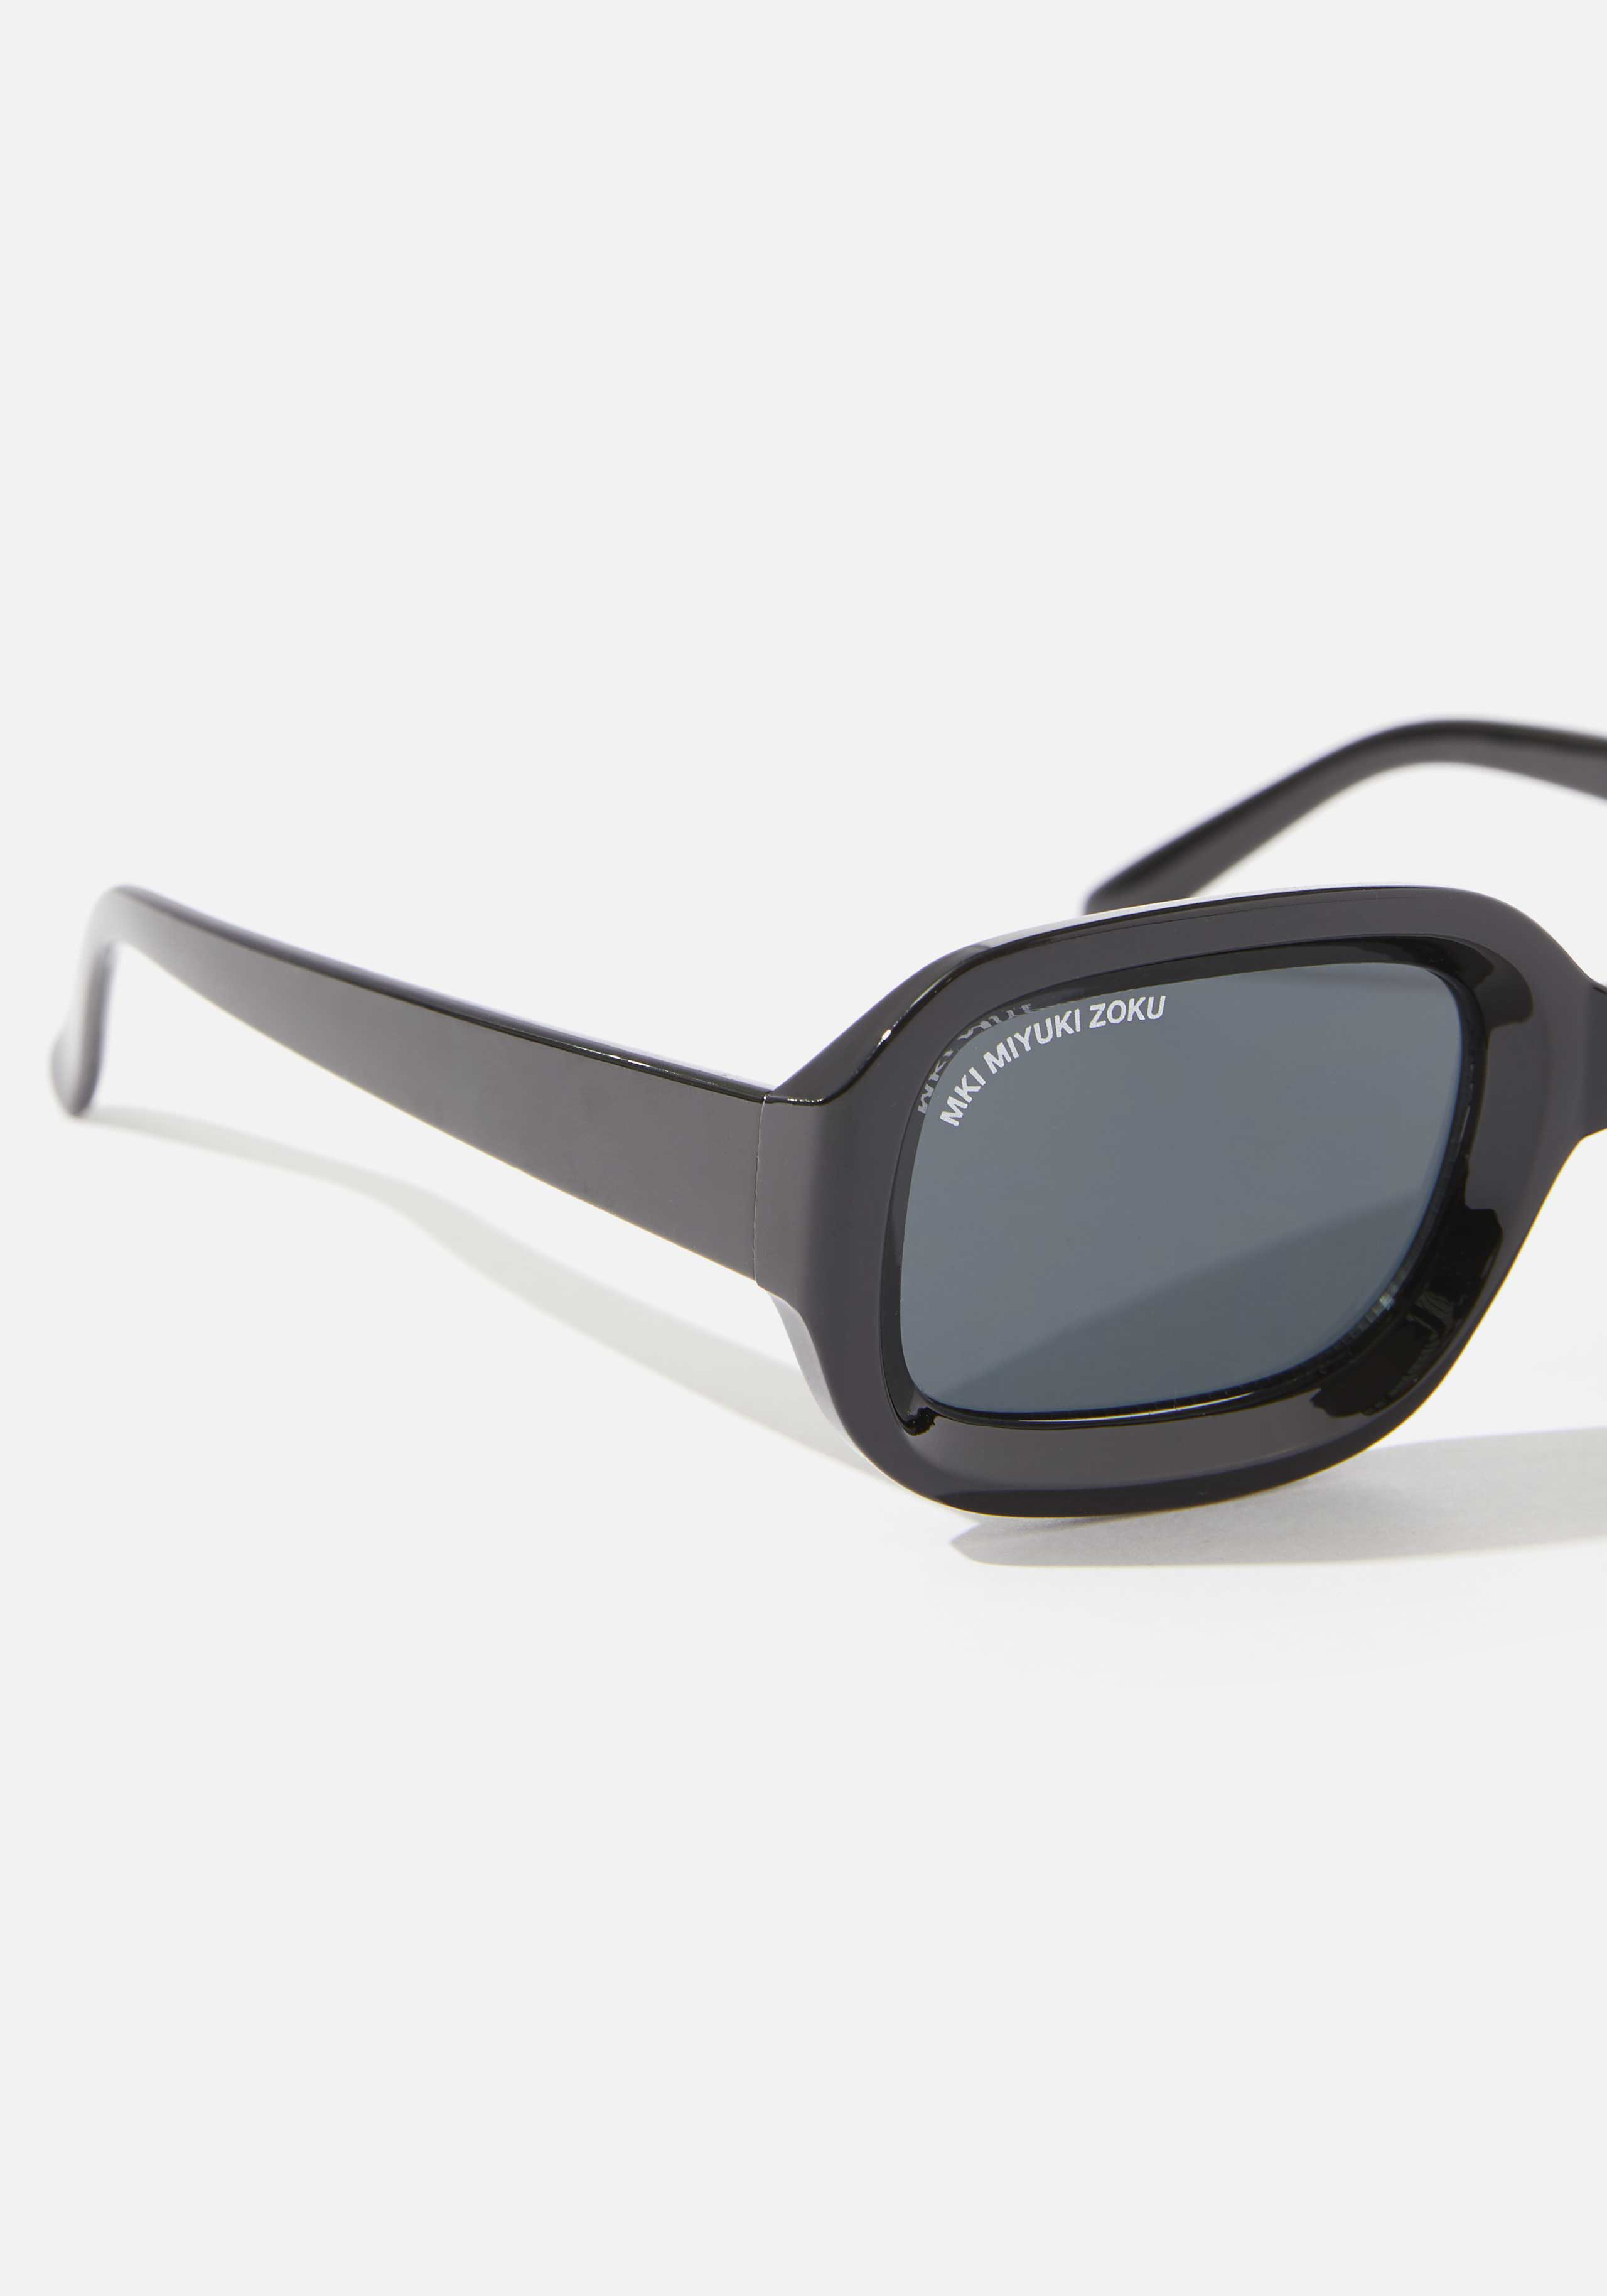 mki moulded convex sunglasses 3